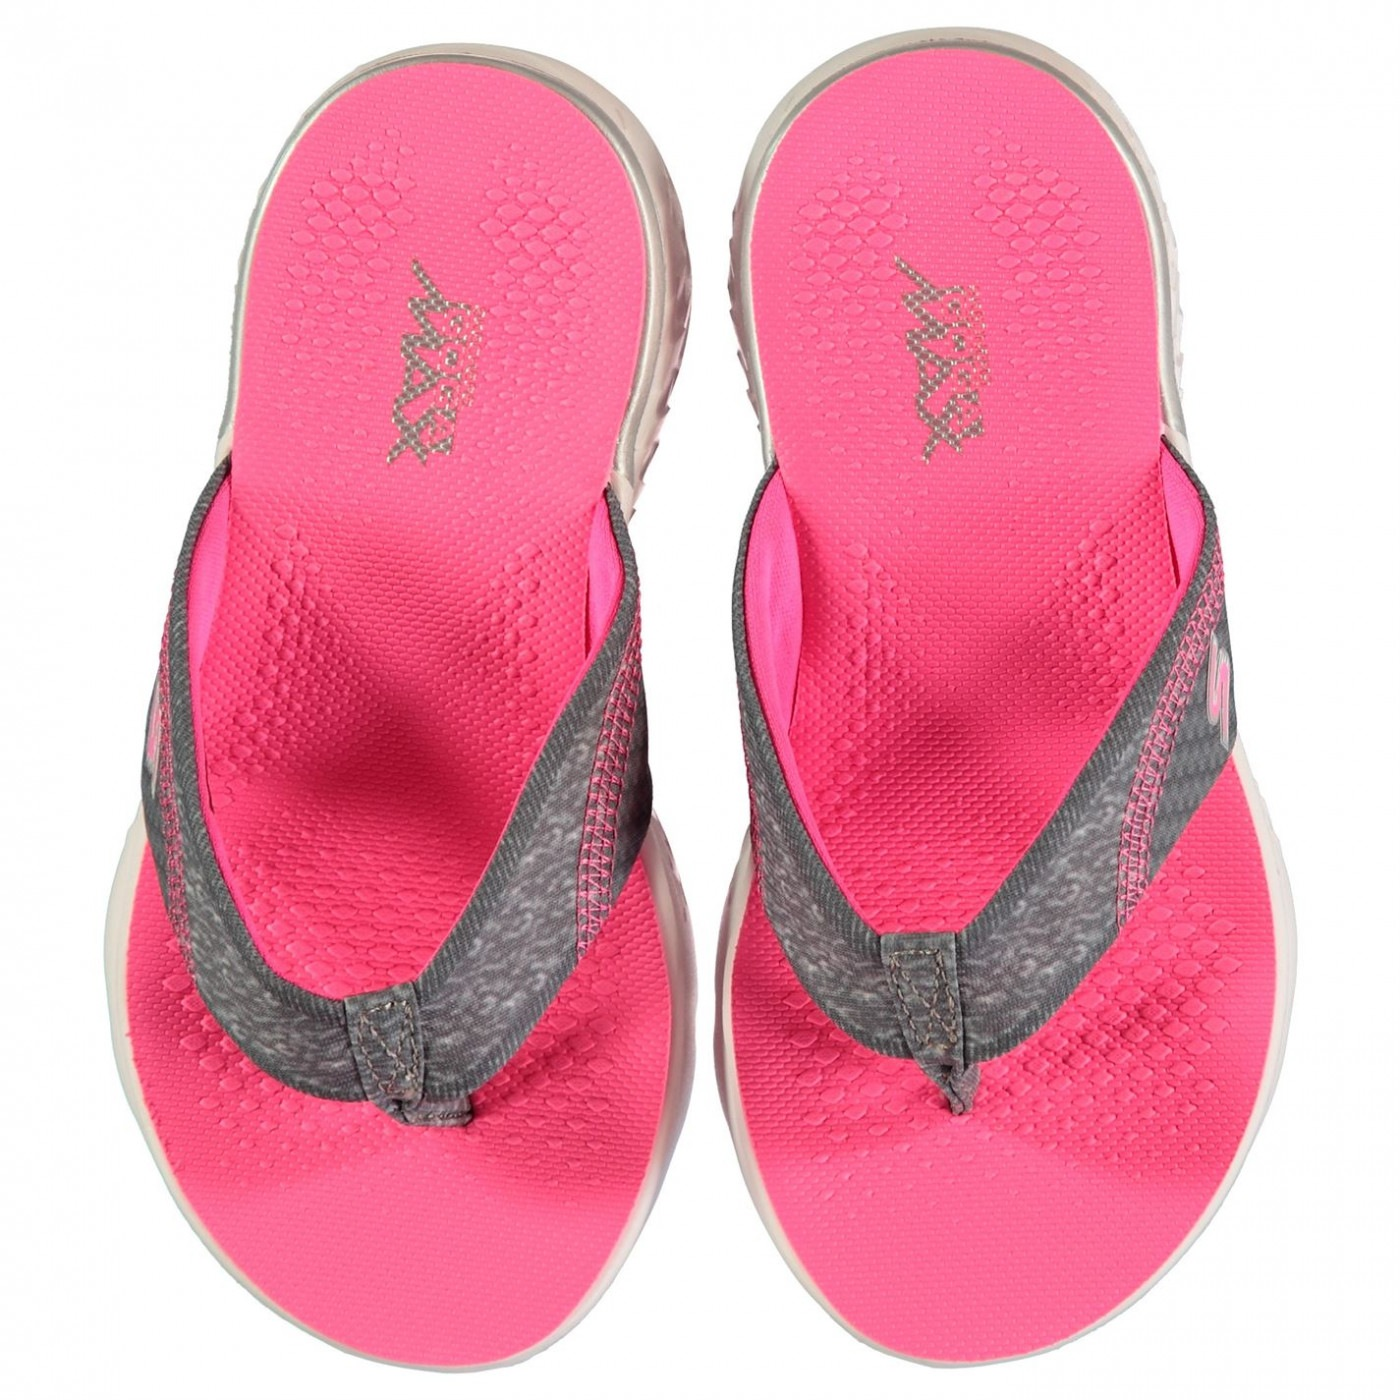 Skechers Flip Flops Junior Girls